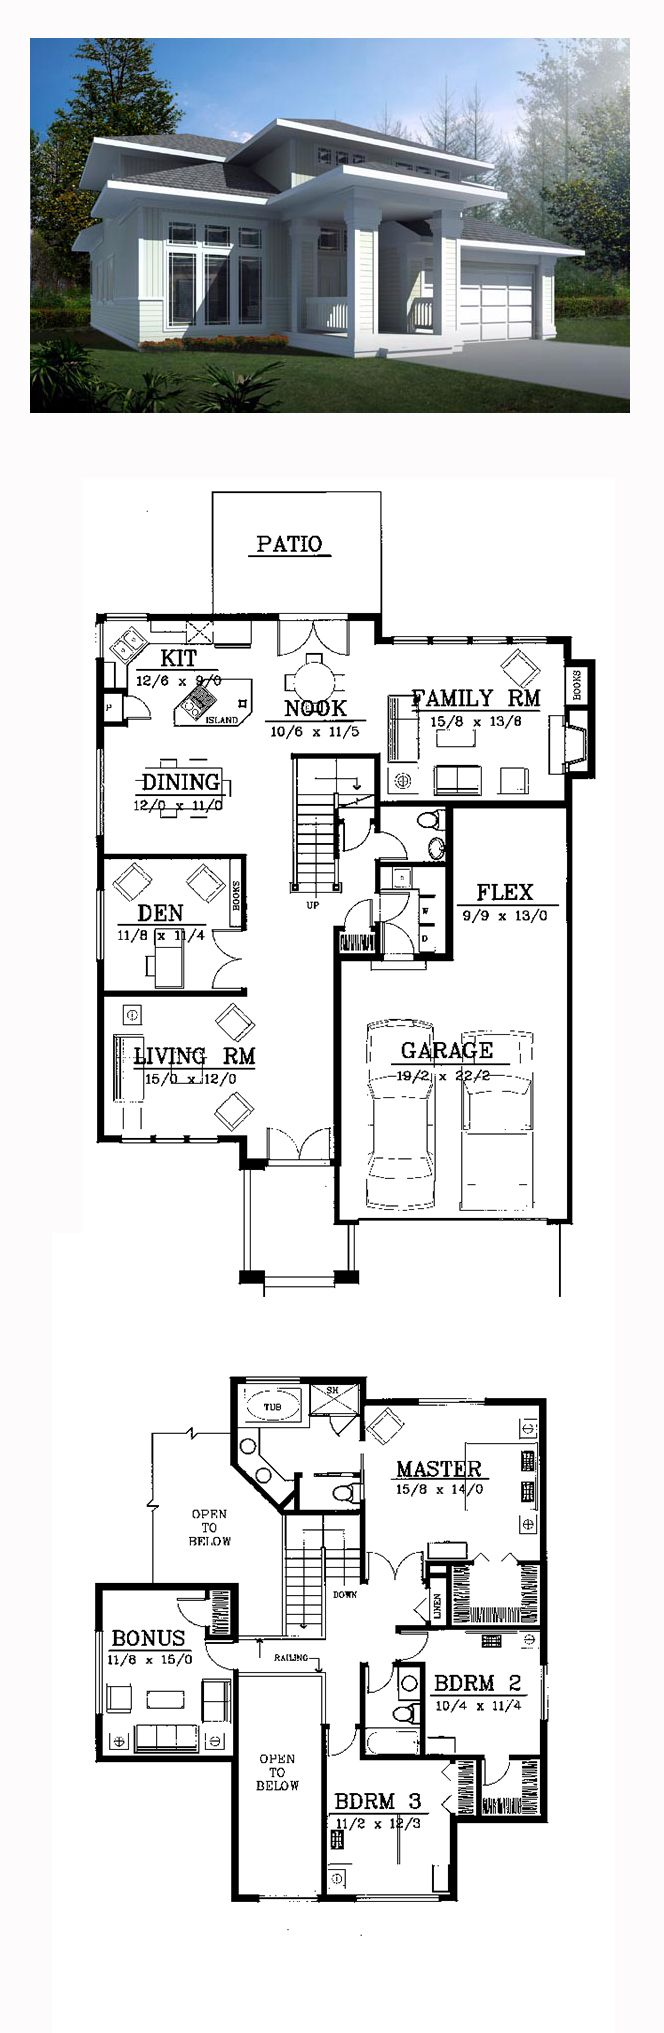 Prairie House Plan 91819 | Total Living Area: 2503 sq. ft., 3 bedrooms and 2.5 bathrooms. #prairiehome